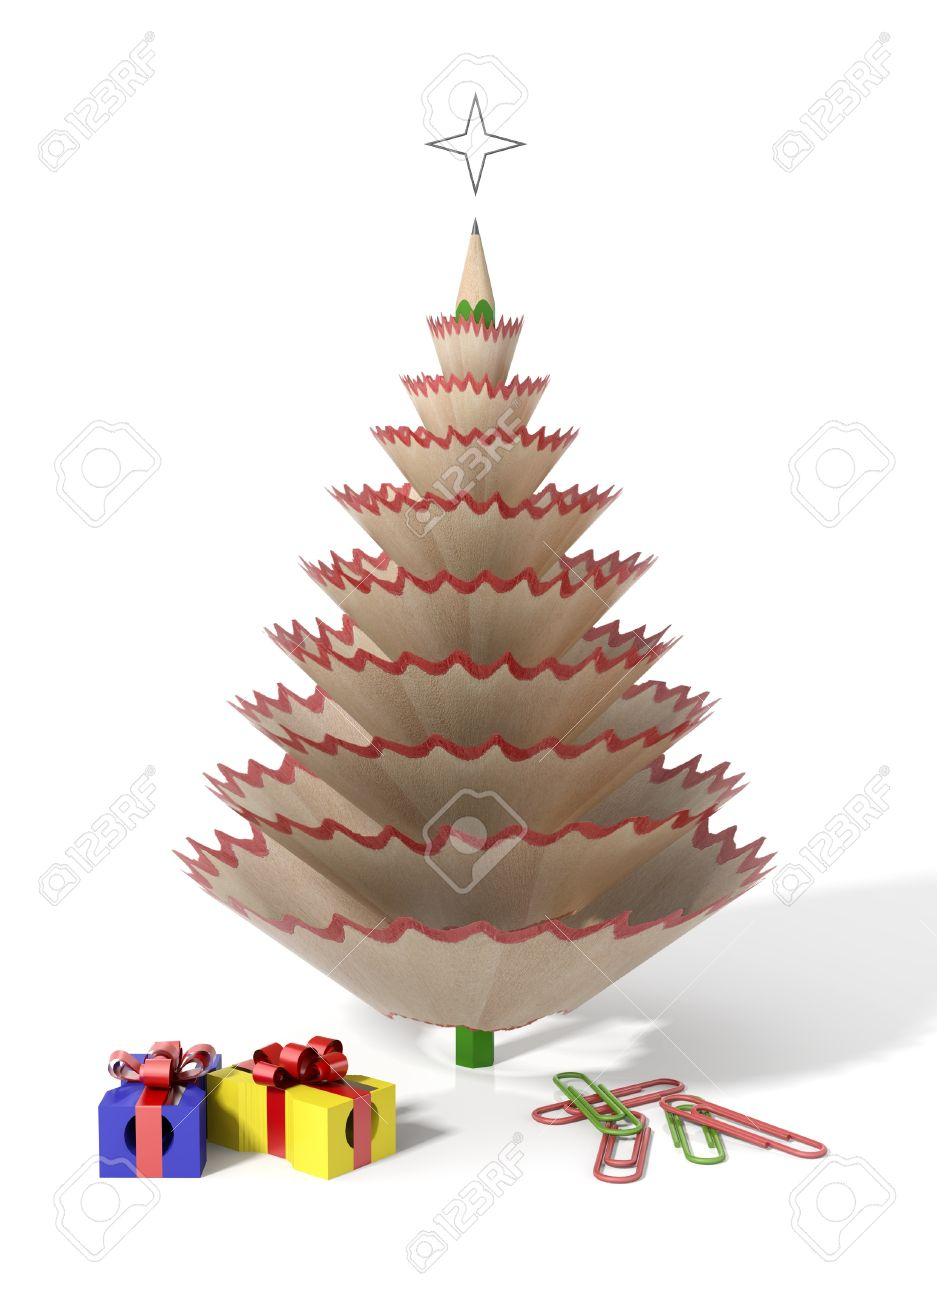 Pencil Christmas Tree.Christmas Tree Made With A Pencil And Its Wooden Shavings With